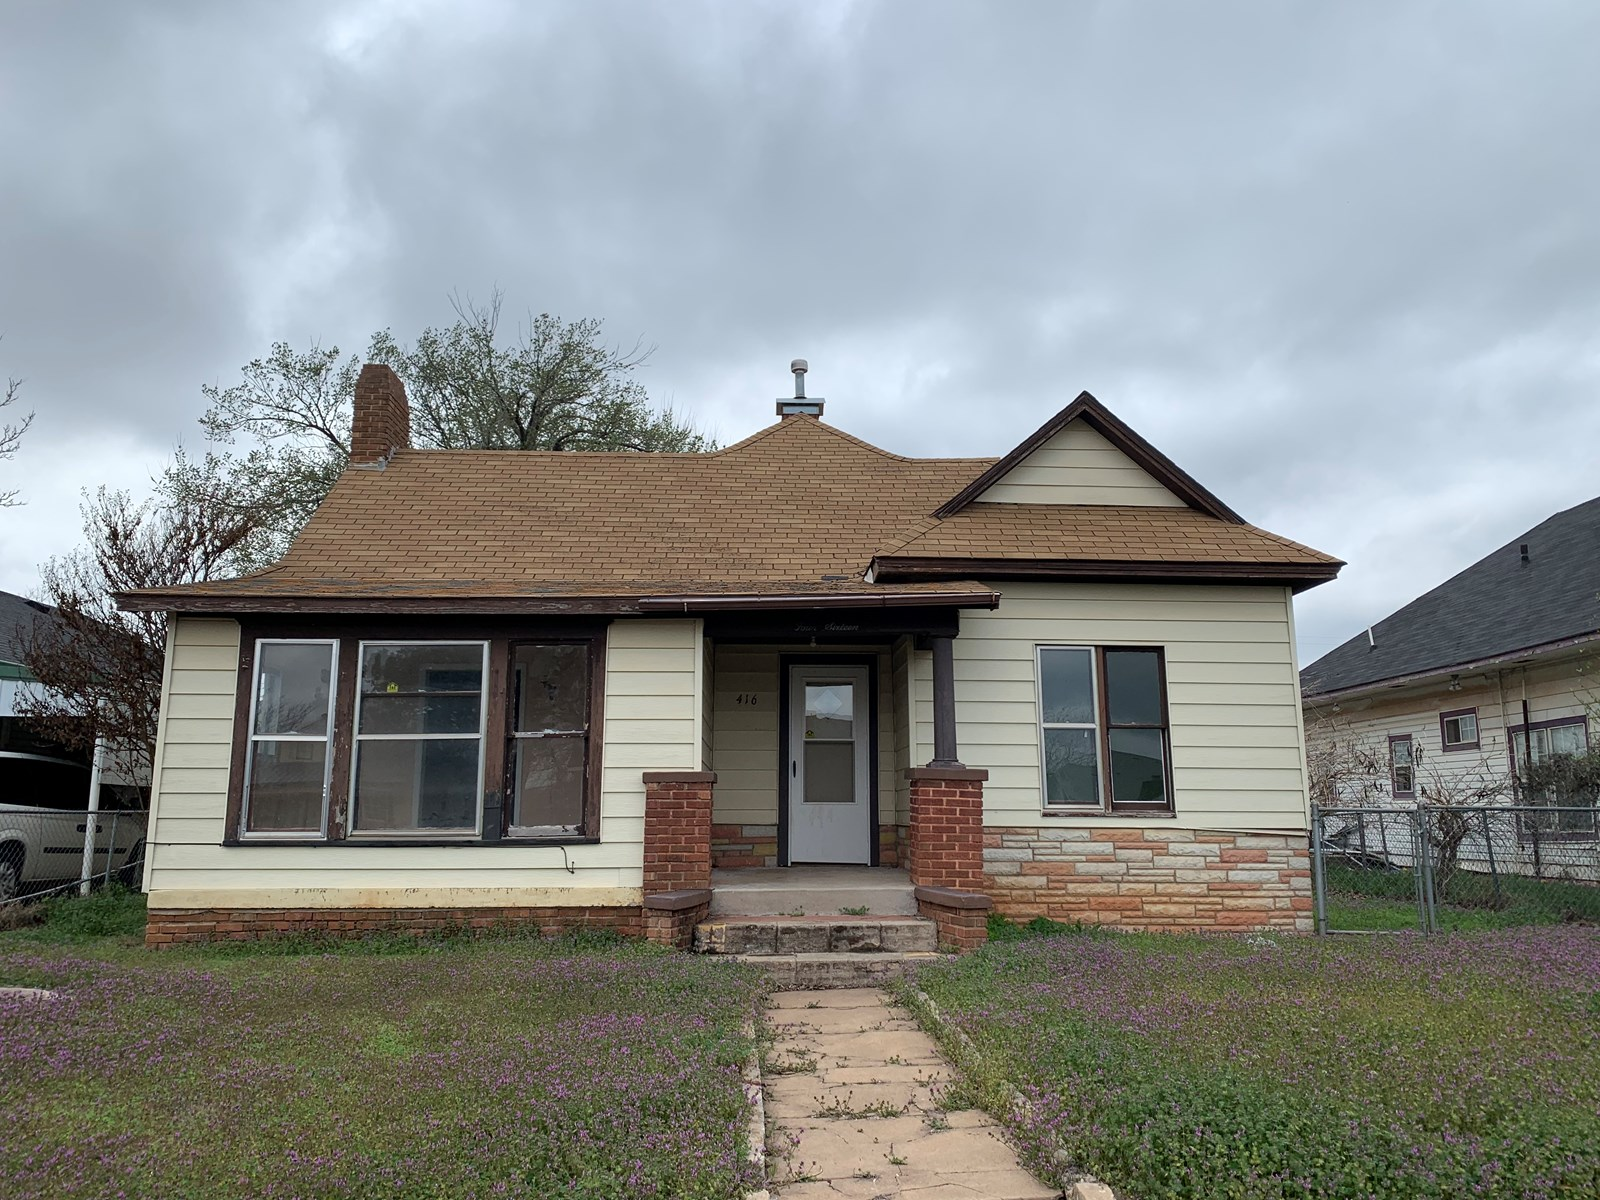 Clinton, OK House for Sale - 3 bedroom - Custer County